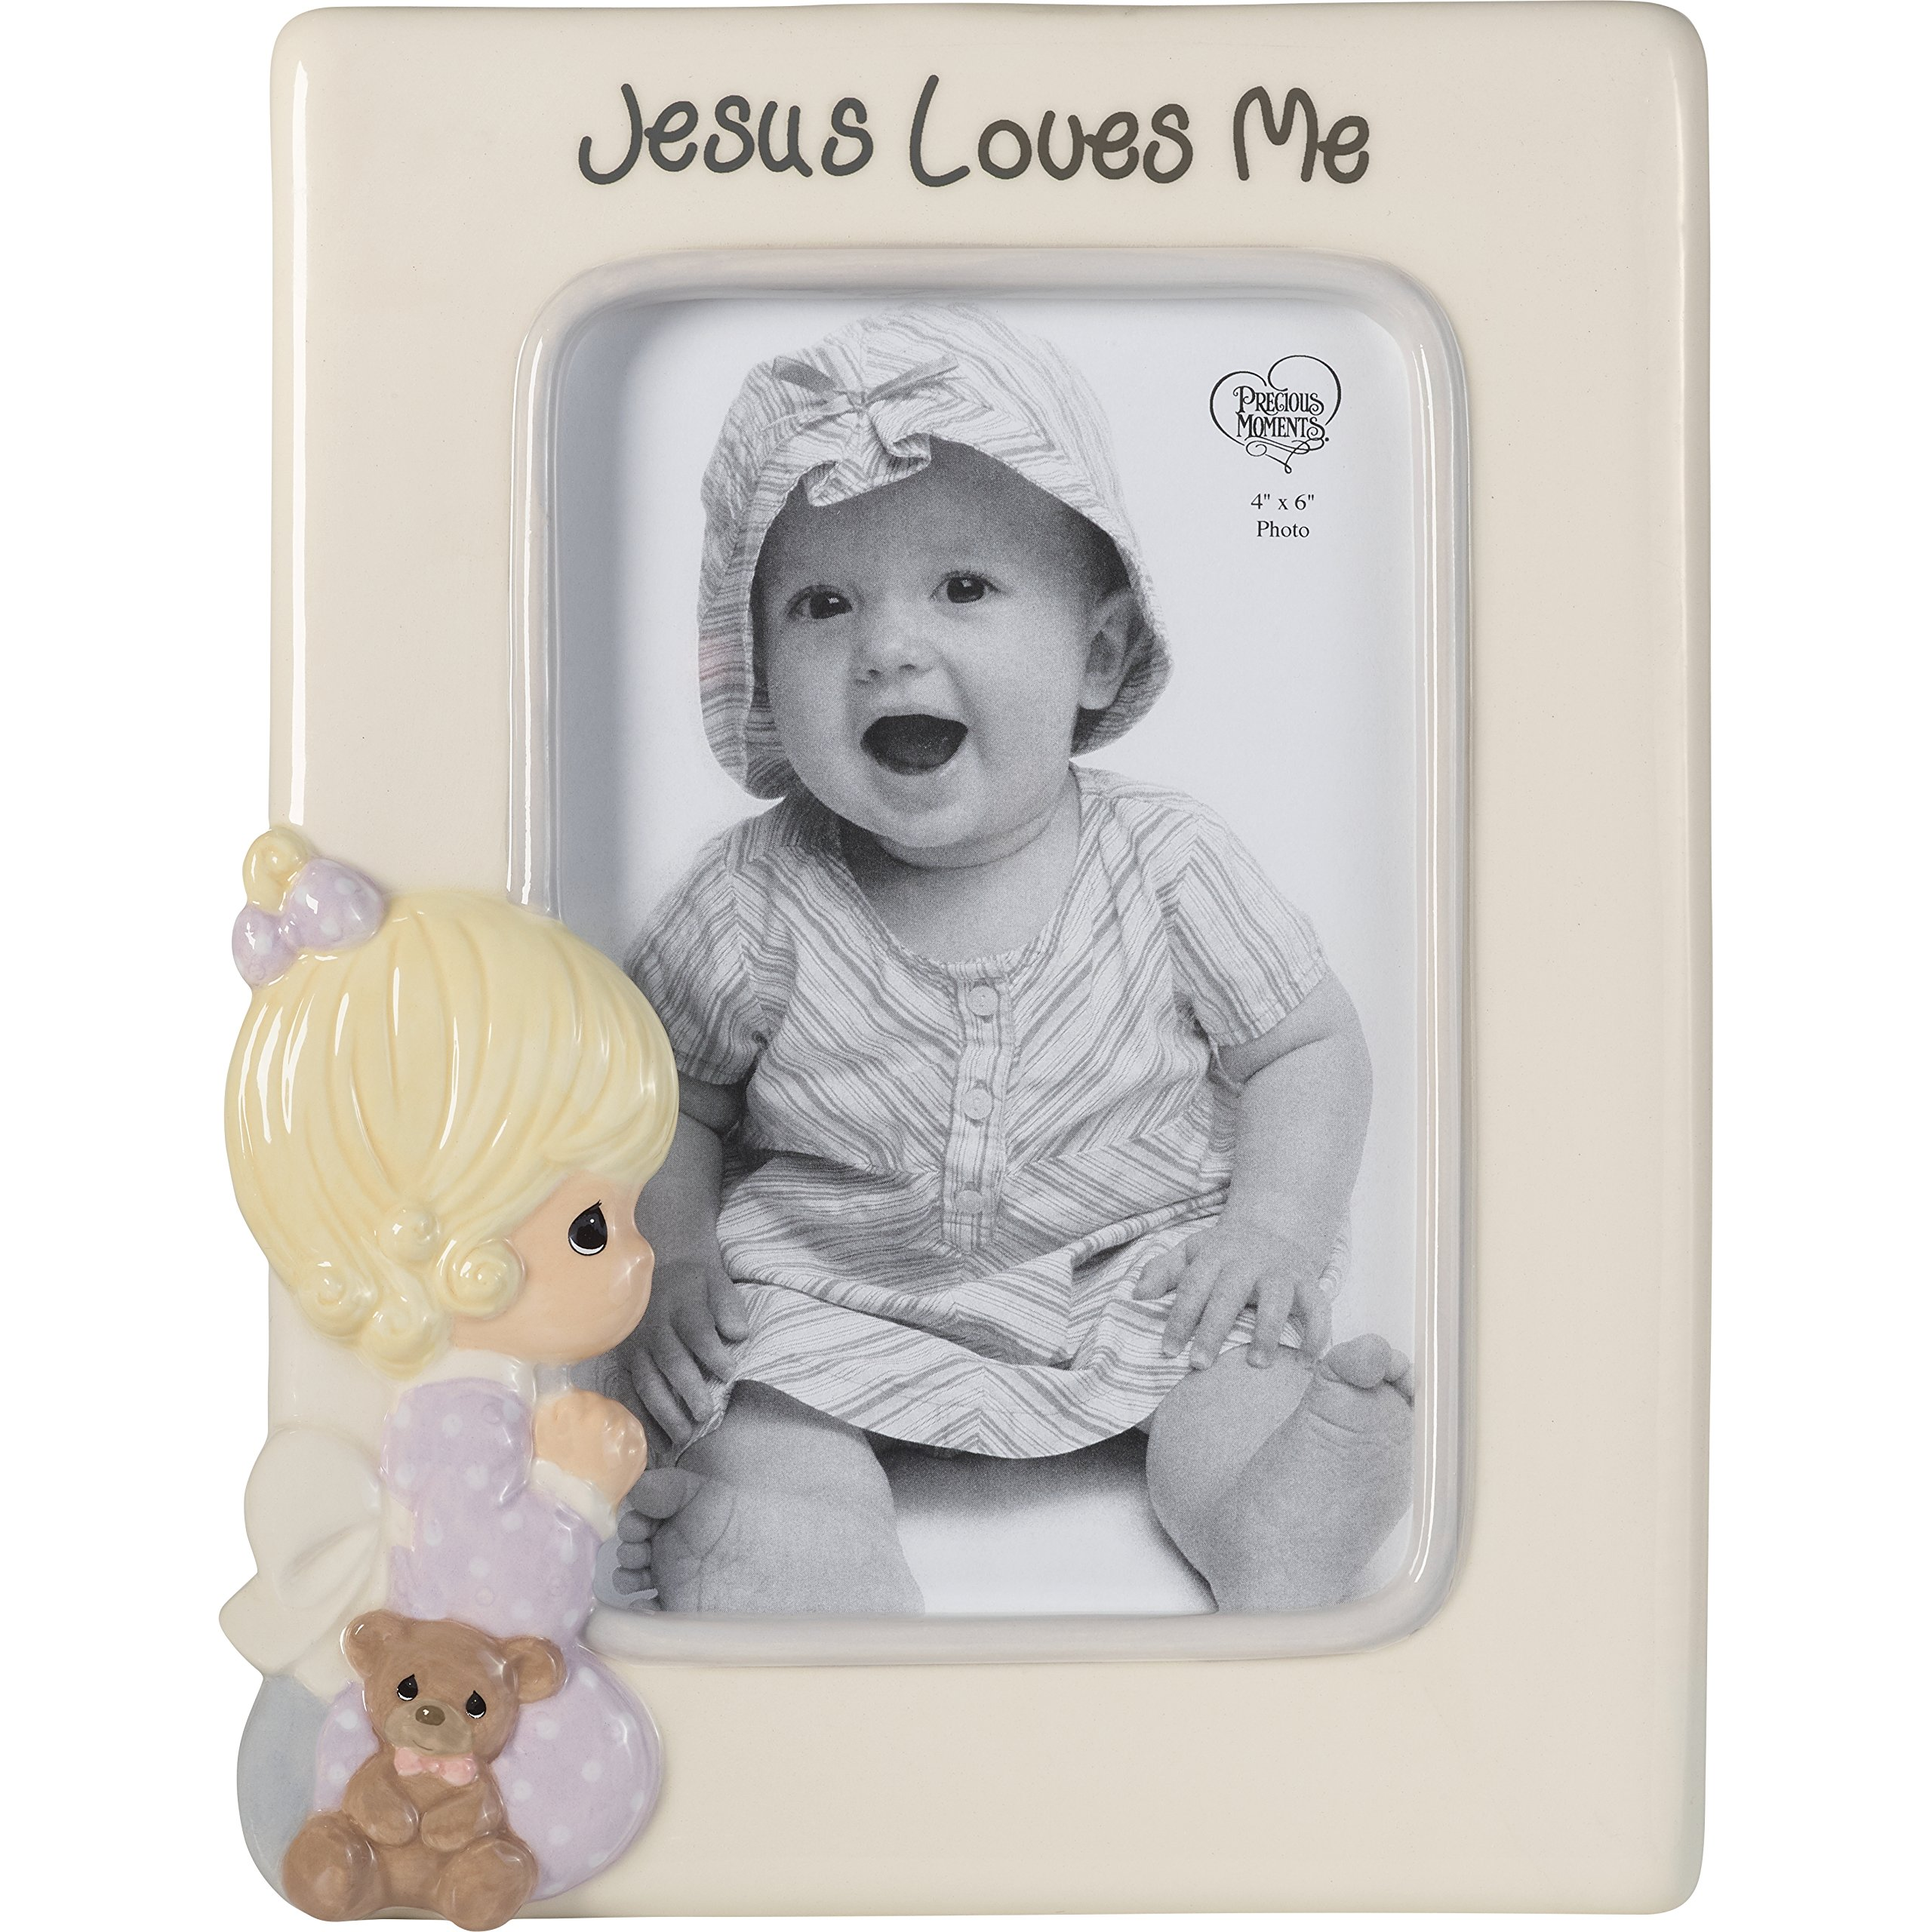 Precious Moments Praying Girl Jesus Loves Me Ceramic 4x6 Photo Frame 185033, One Size, Multicolor